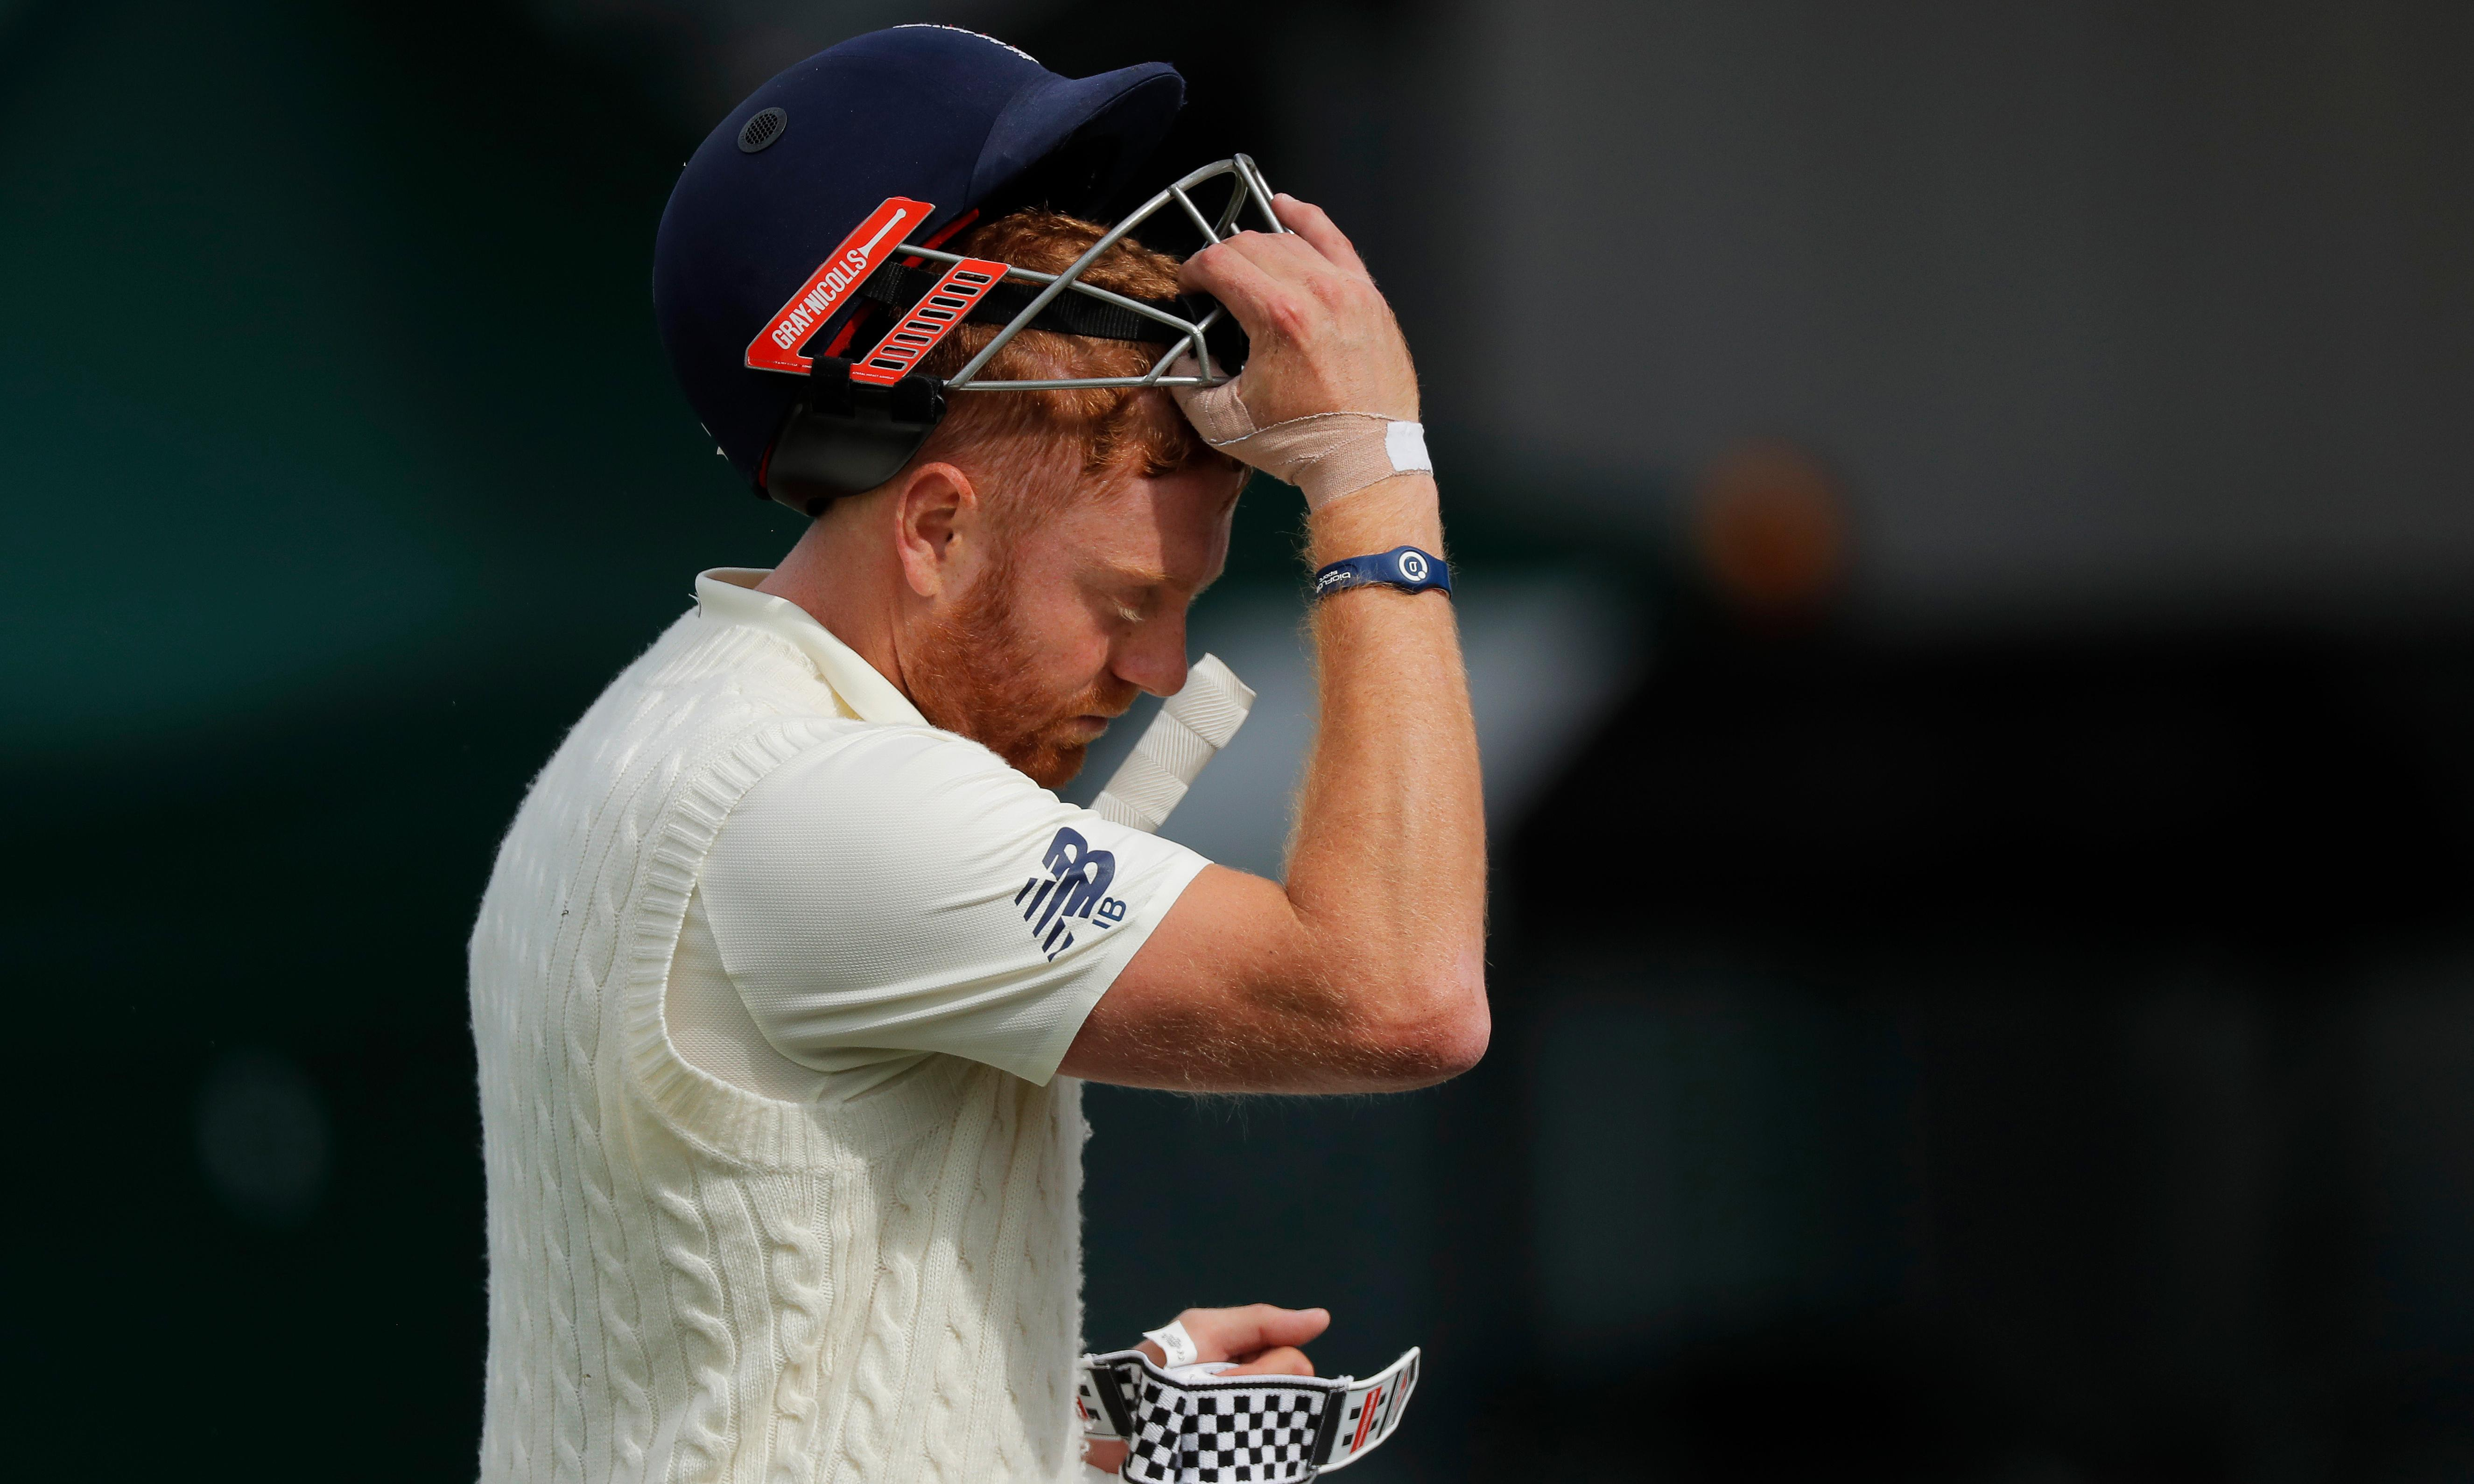 Jonny Bairstow left out of England Test squad for New Zealand tour